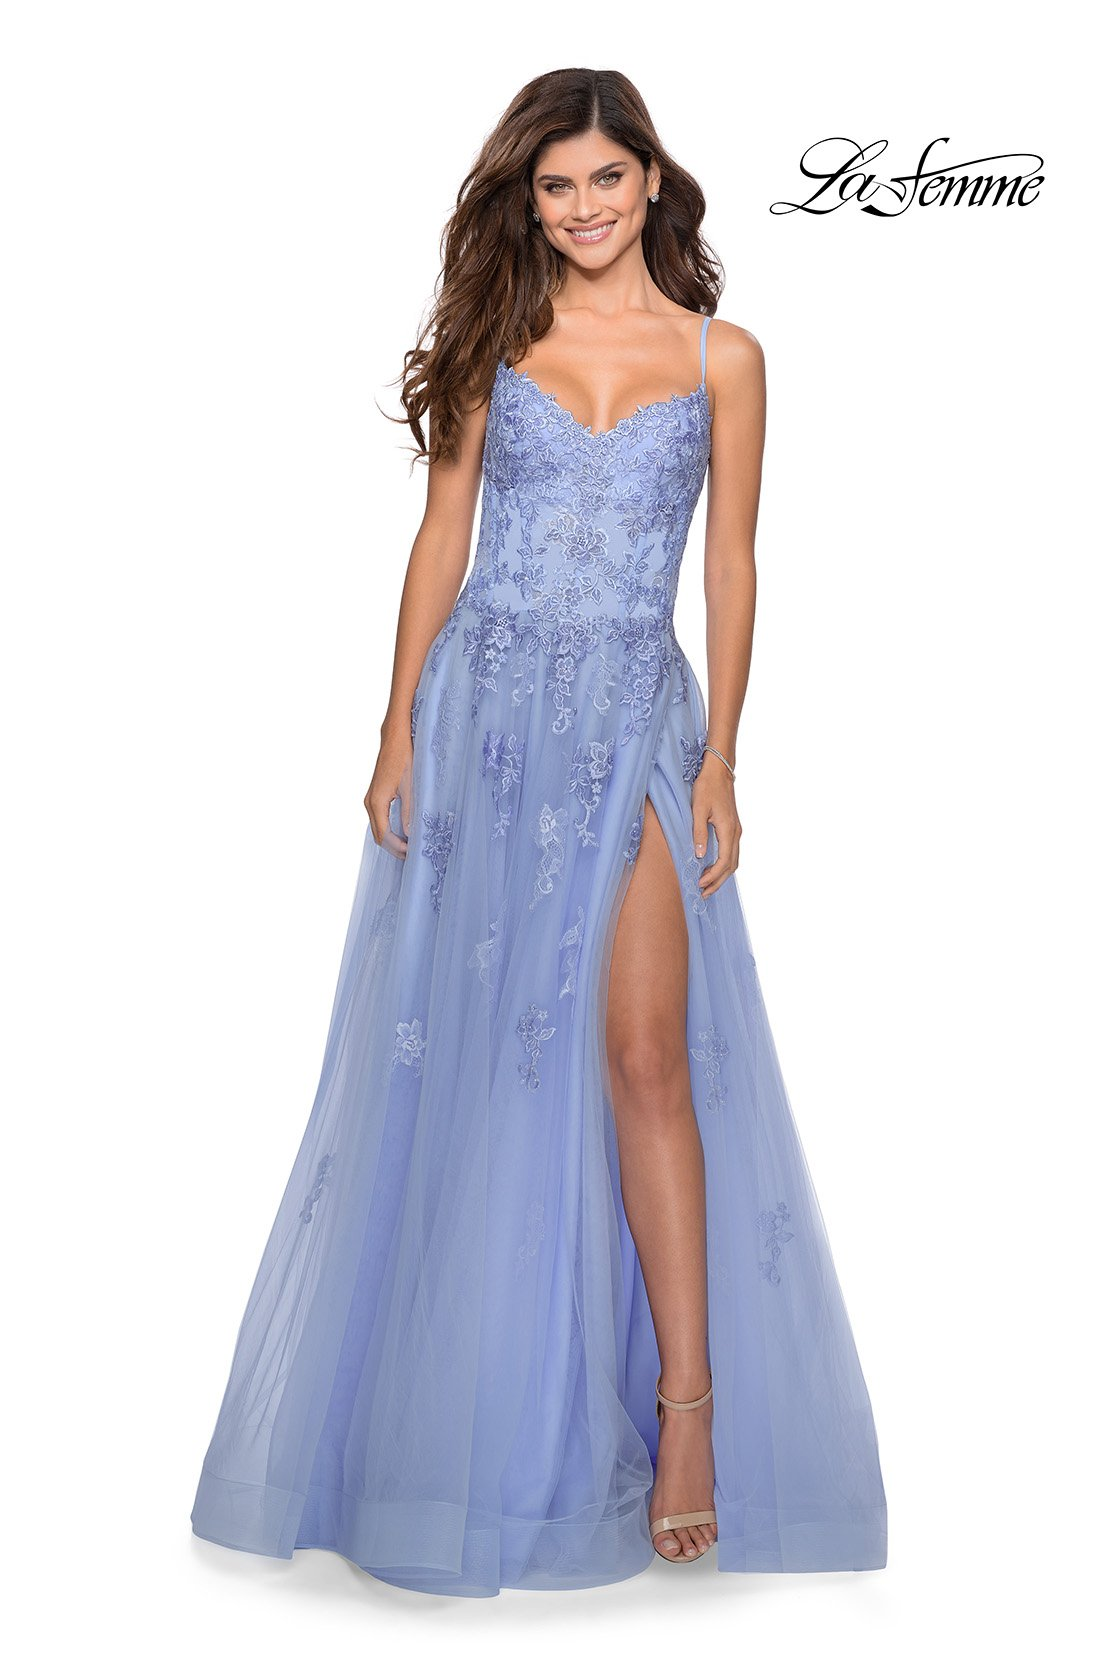 La Femme 28952 prom dress images.  La Femme 28952 is available in these colors: Lilac Mist, Pale Yellow.